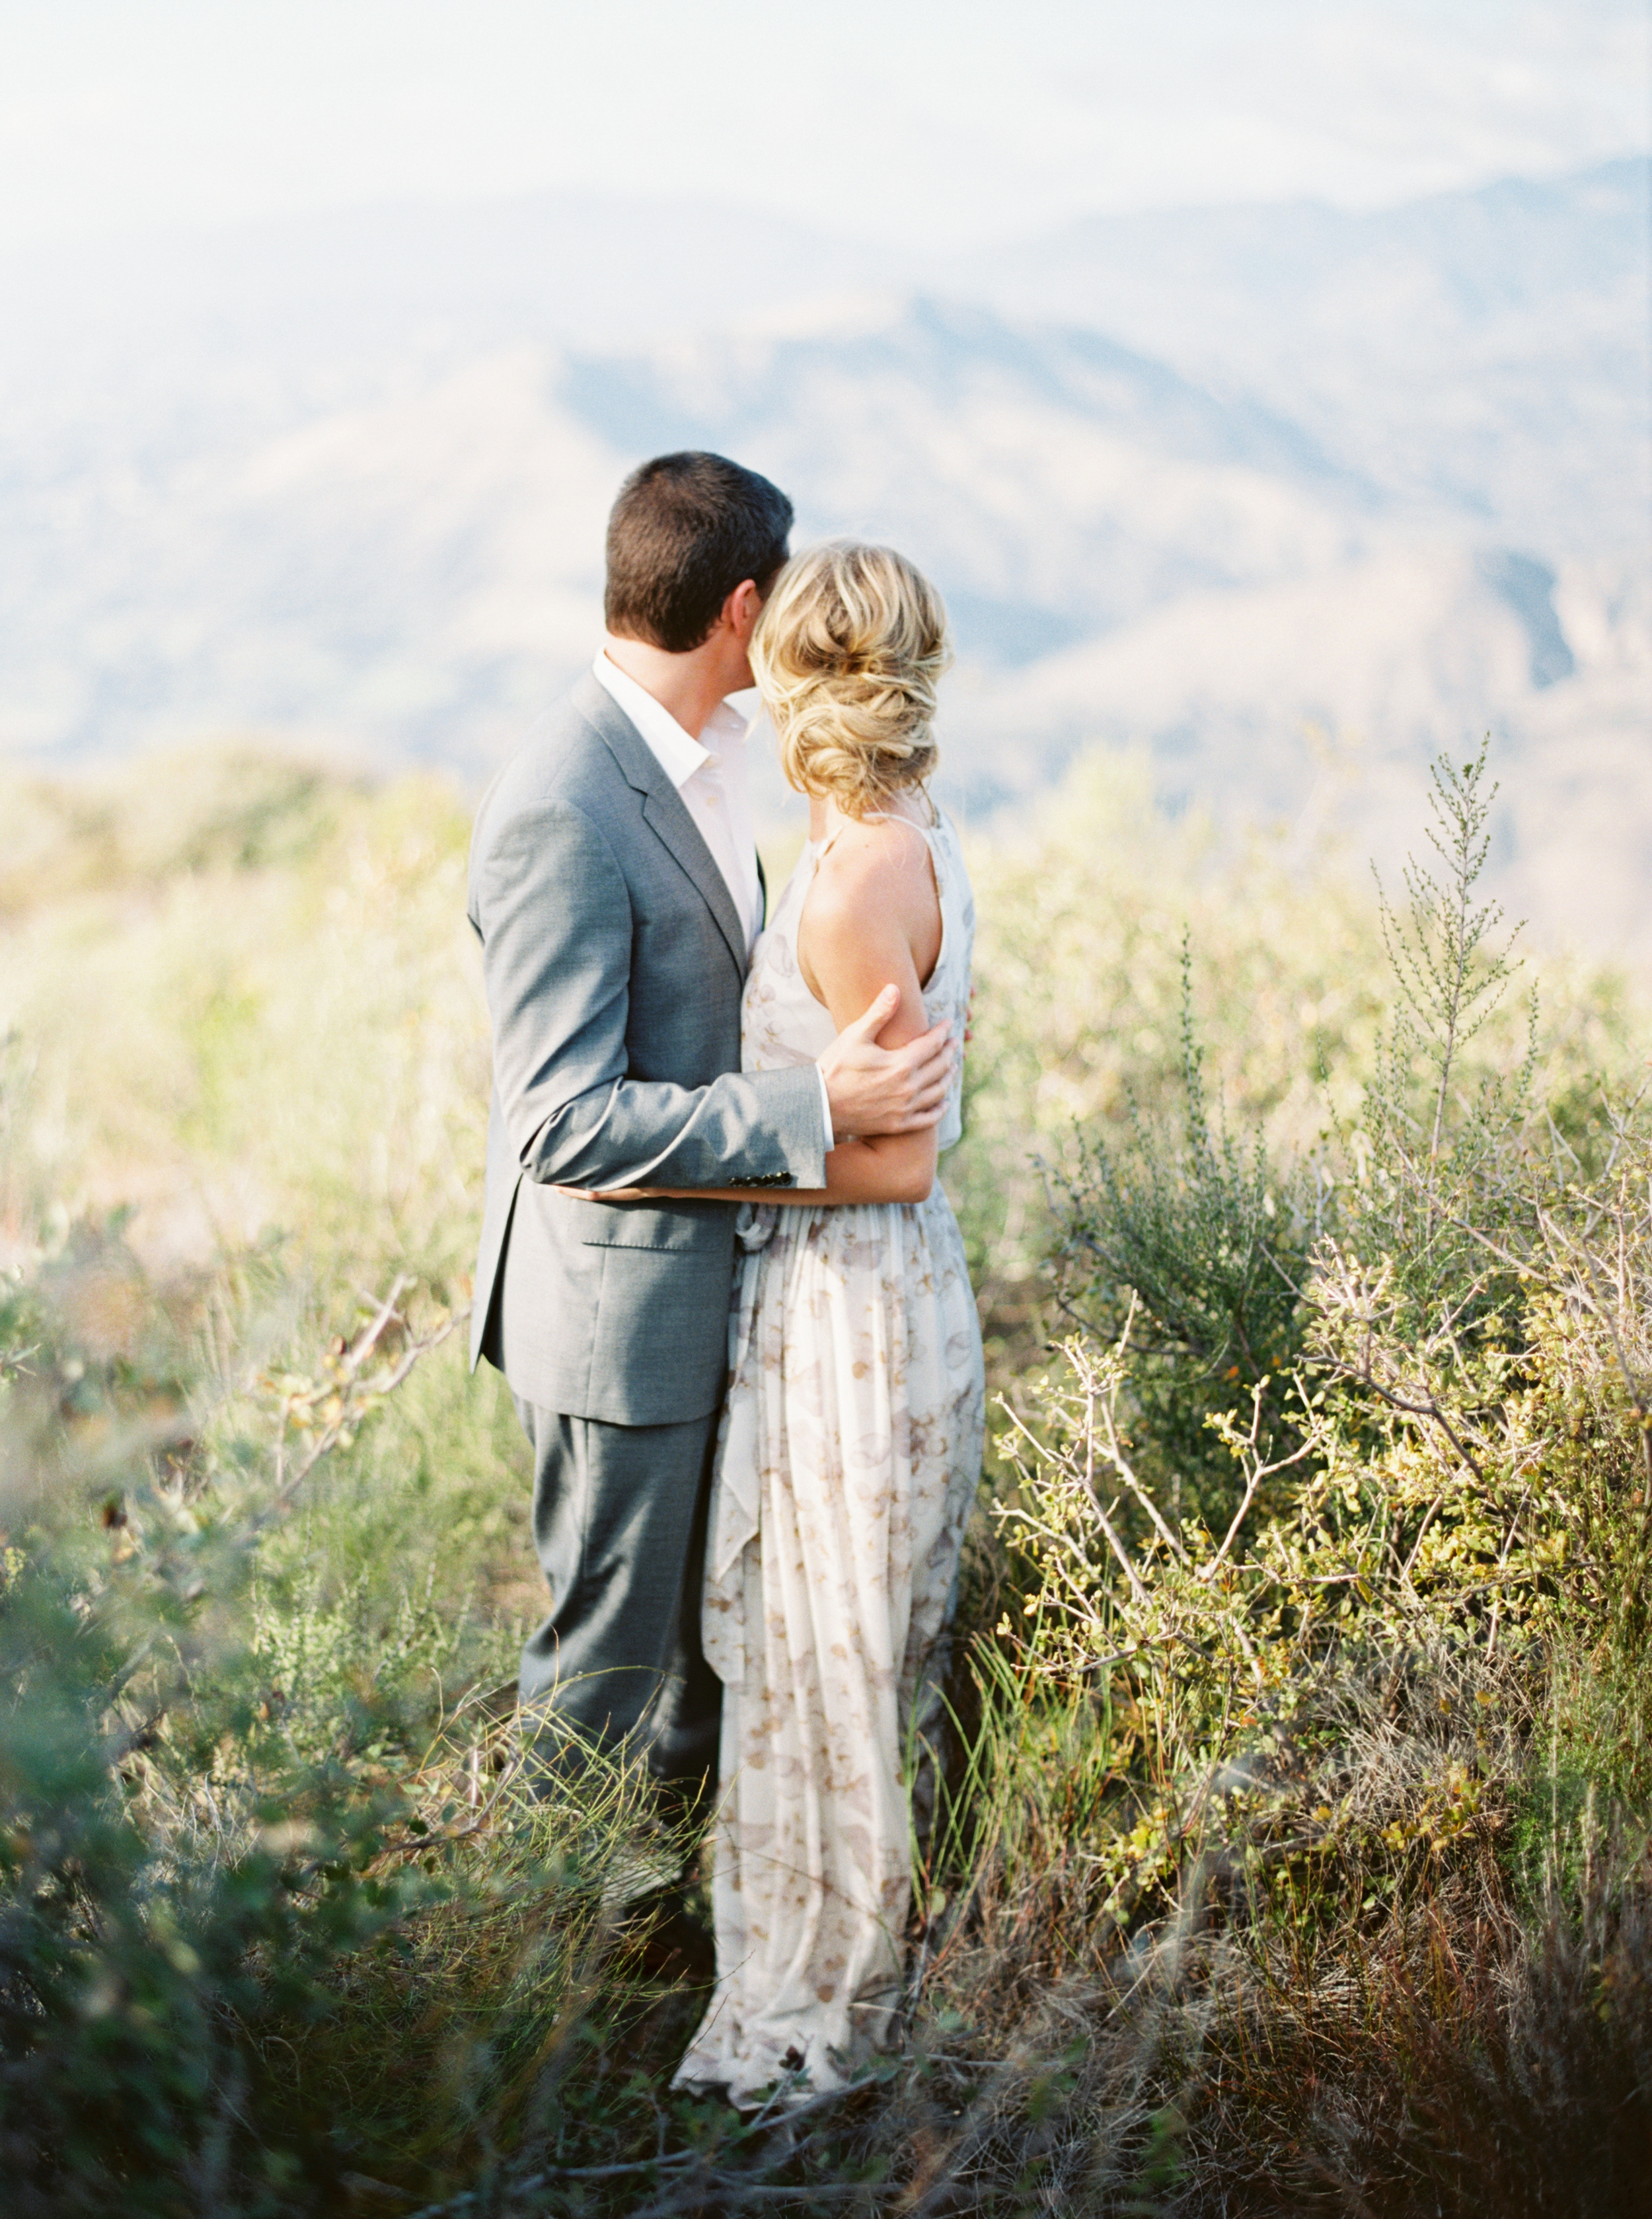 michelle_boyd_pv_takeover_michelles_vision_contax645_ zeiss80mm_fuji400_knapps_castle_santa_barbara_california_bhldn_weddings_lunabella_makeup_and_hair_photovisionprints.jpg